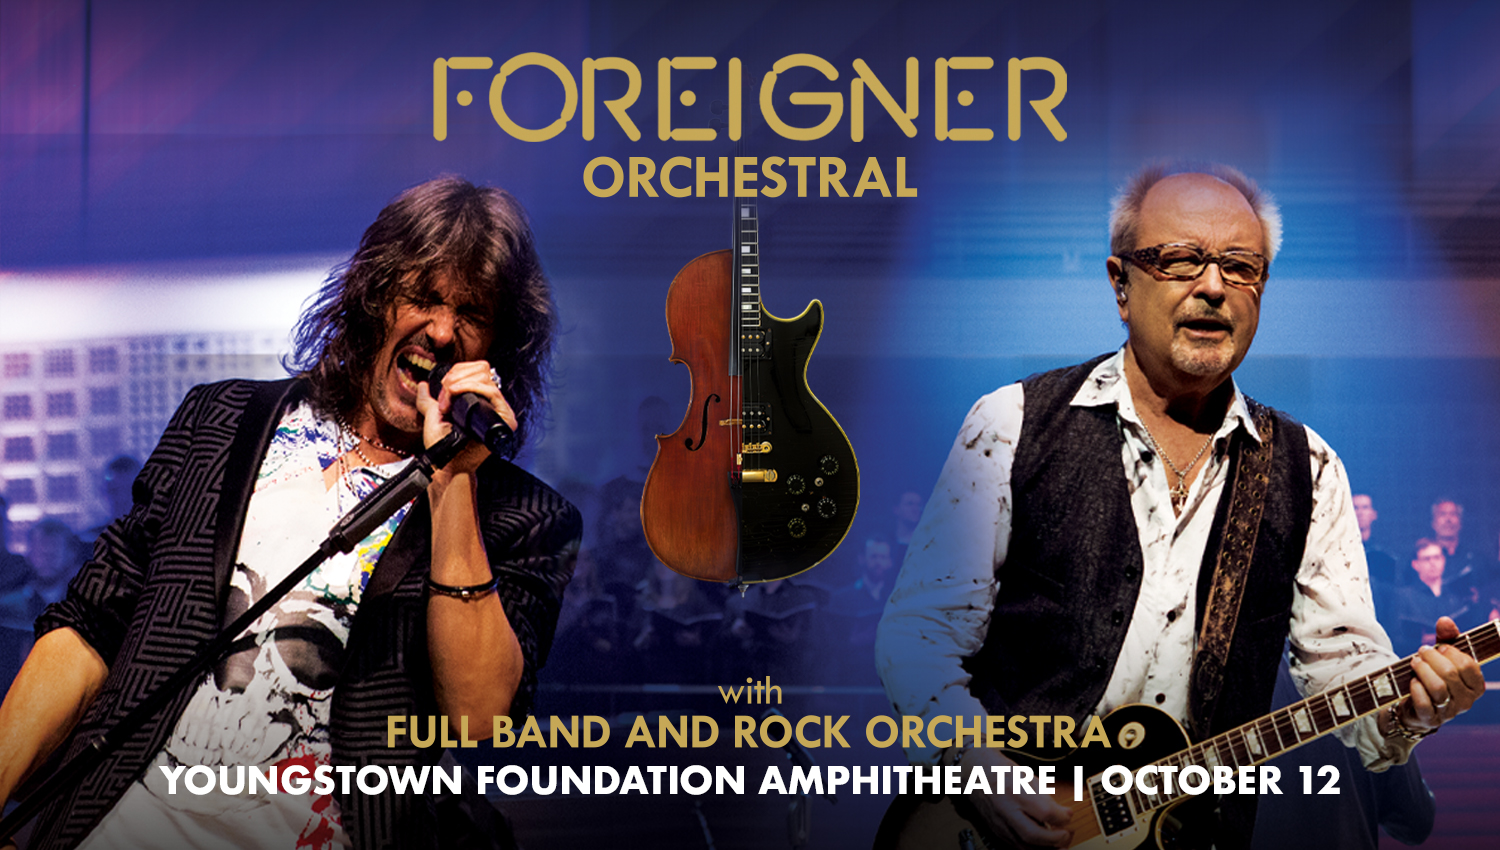 Foreigner Orchestral.